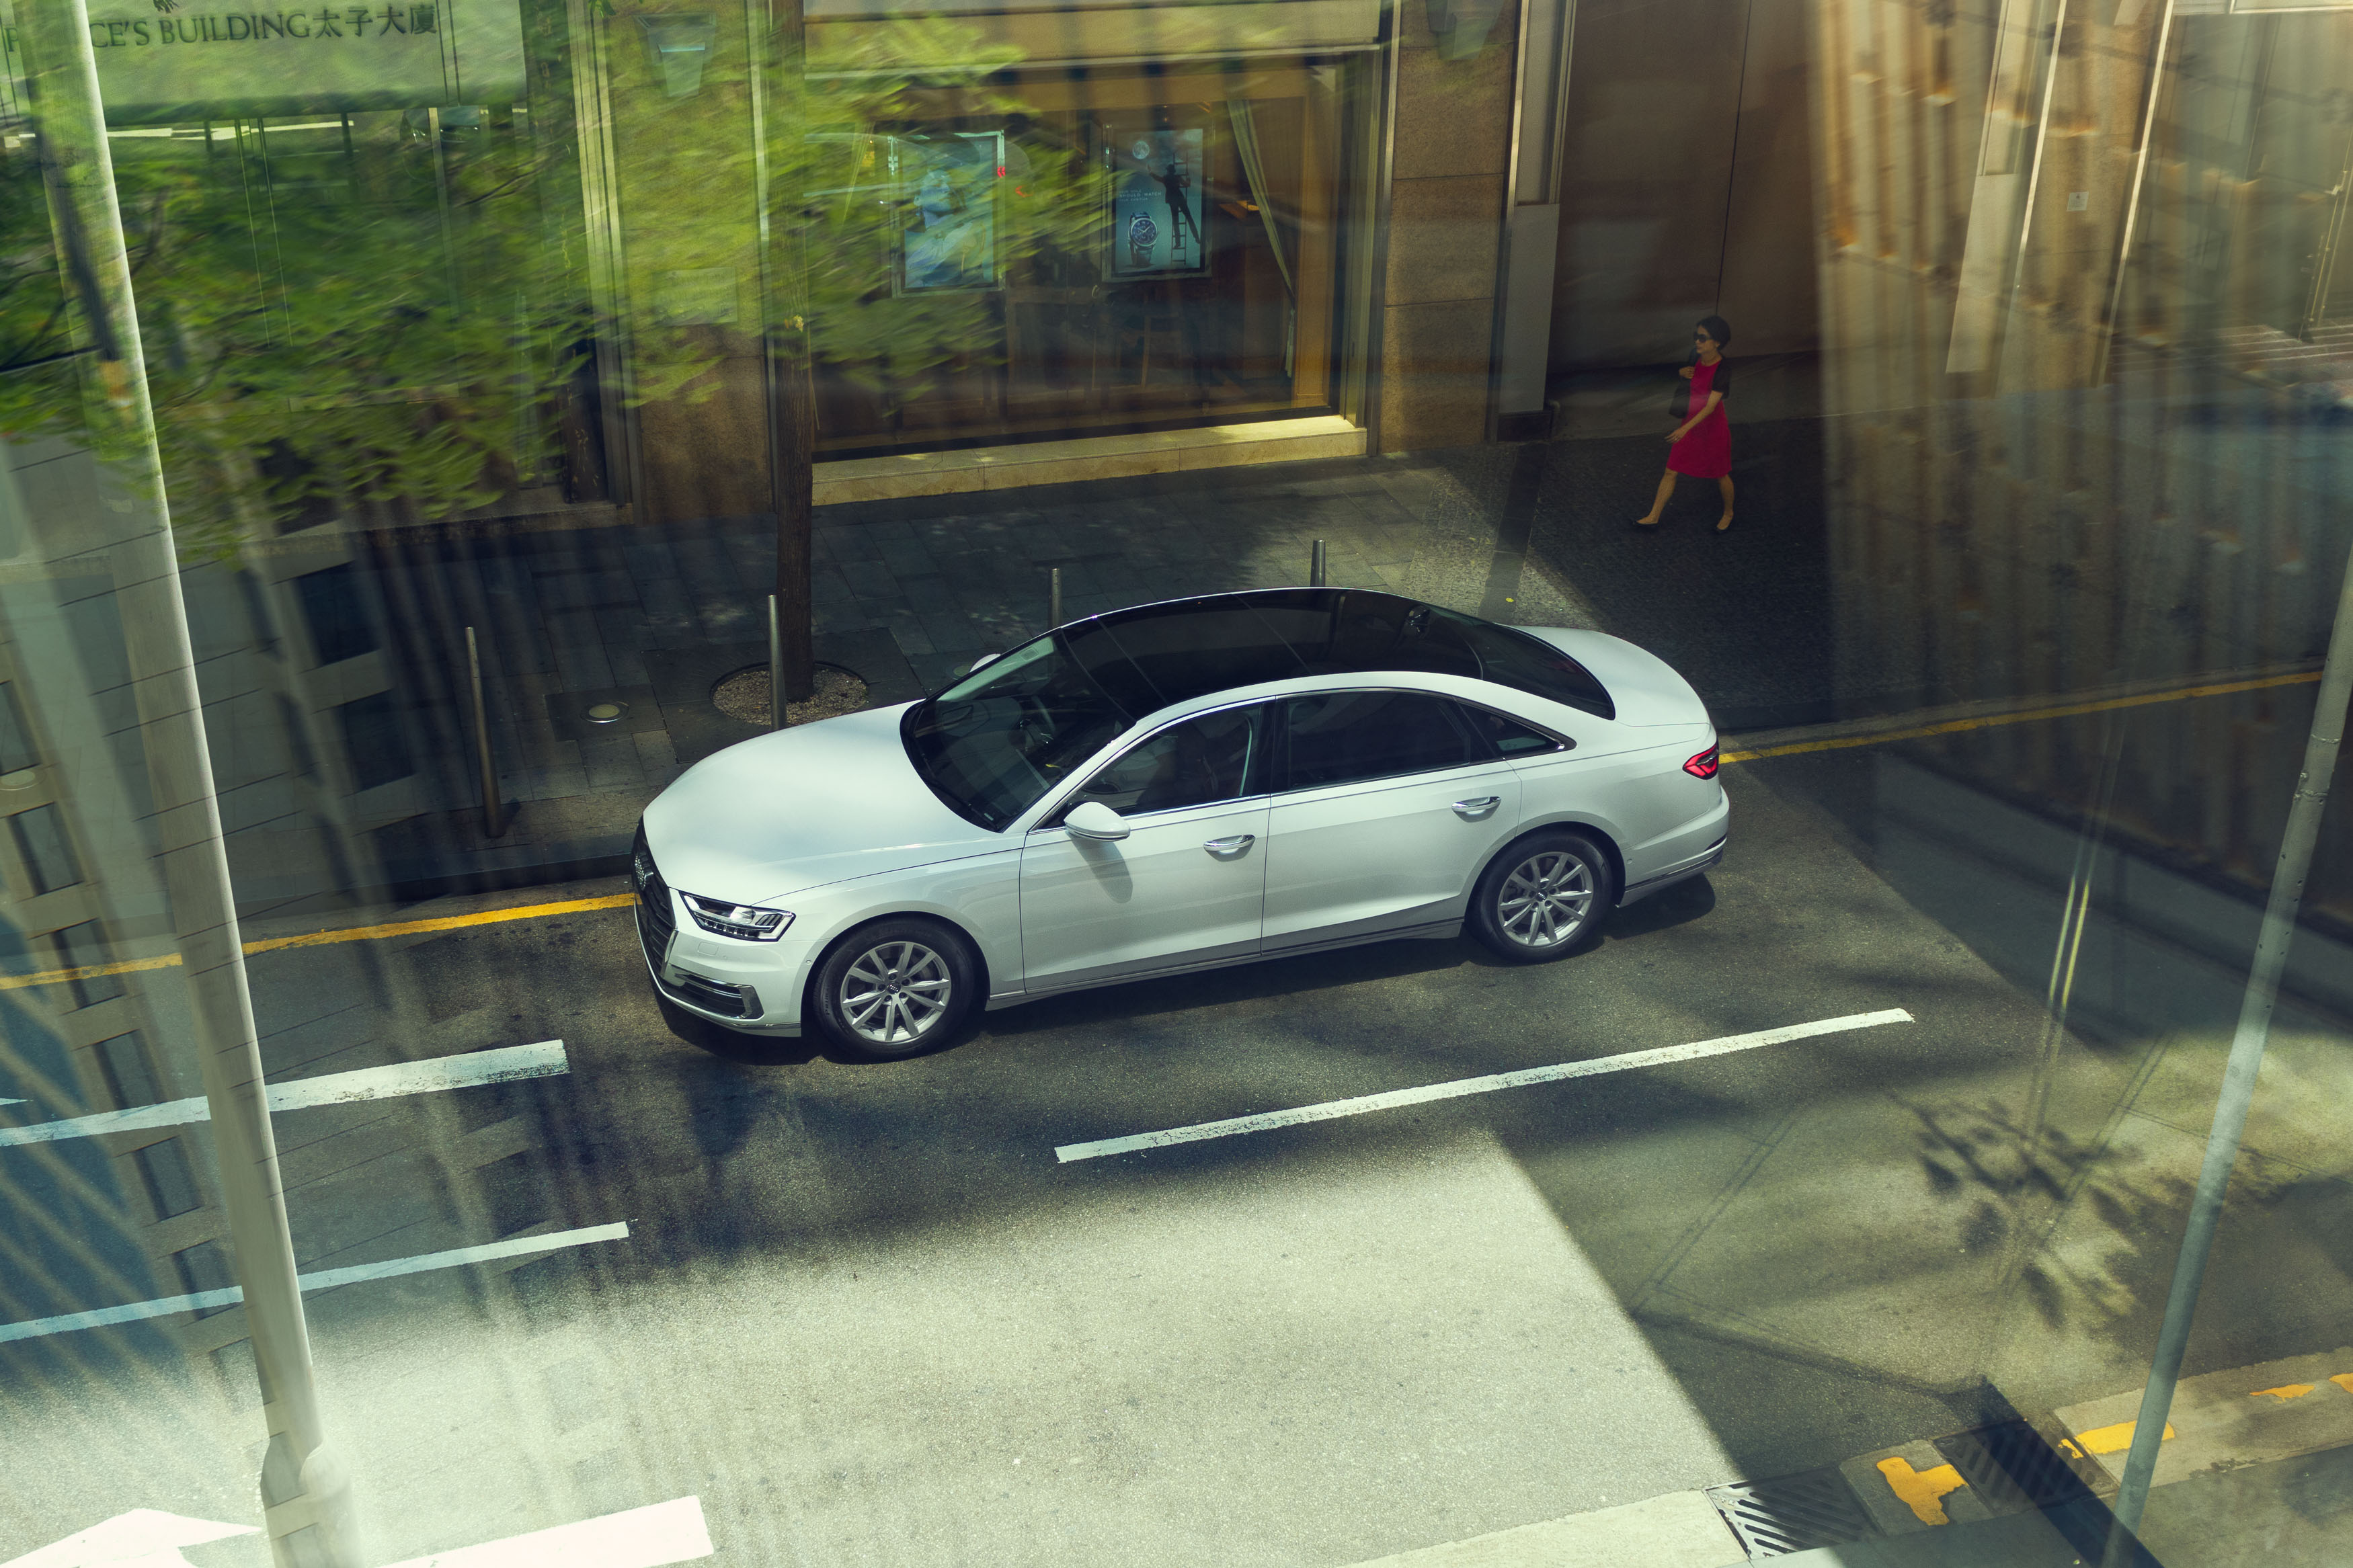 migs-foto-cgi-photographer-automotive-car-hong-kong-michael-lee-advtertising-commercial-photography-AudiA8-visual1_f01